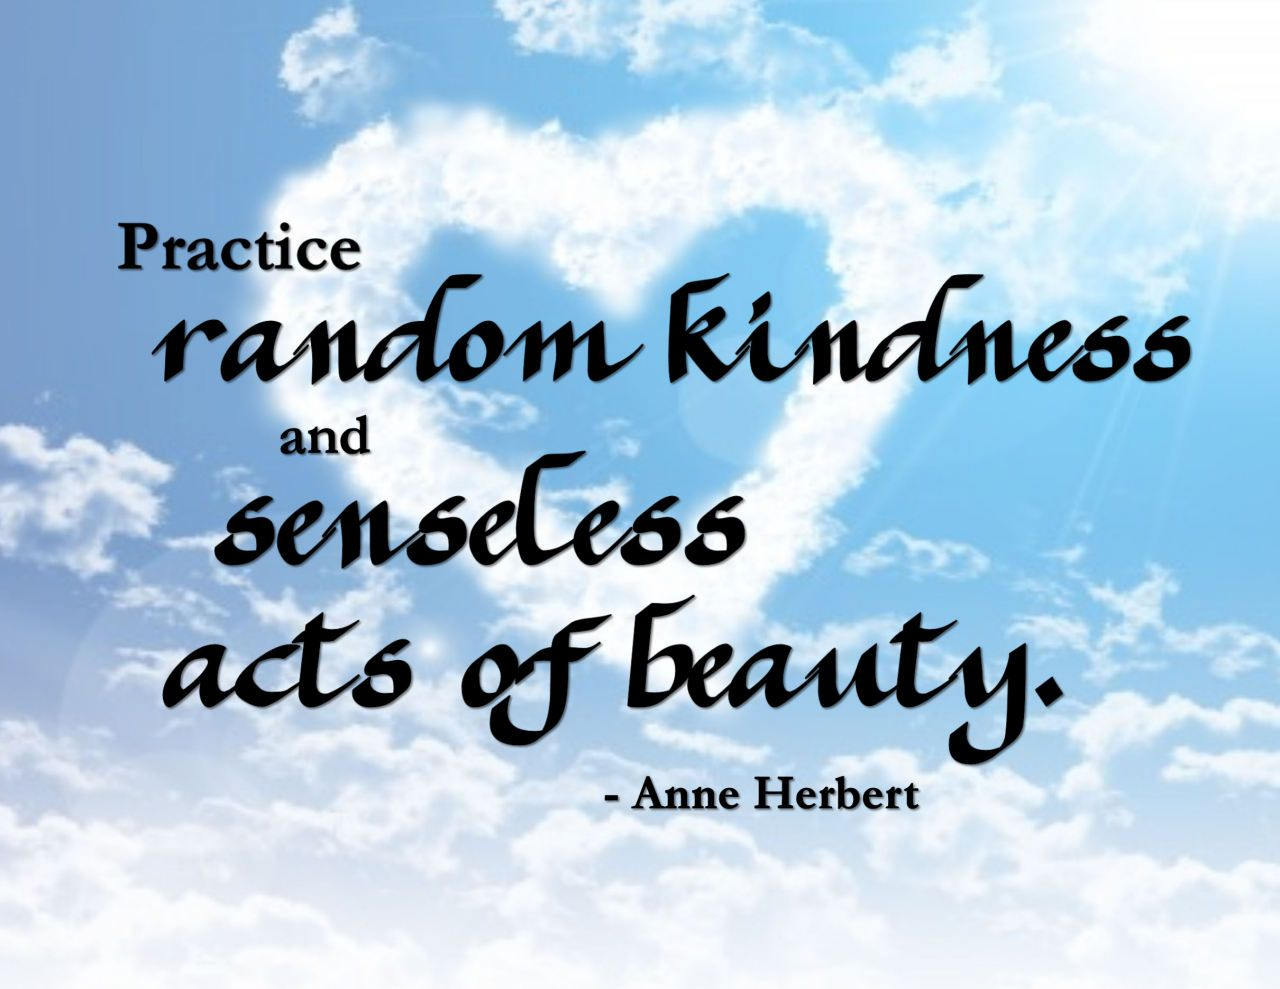 Best Kindness Quotes | Beauty, Quotes and Life